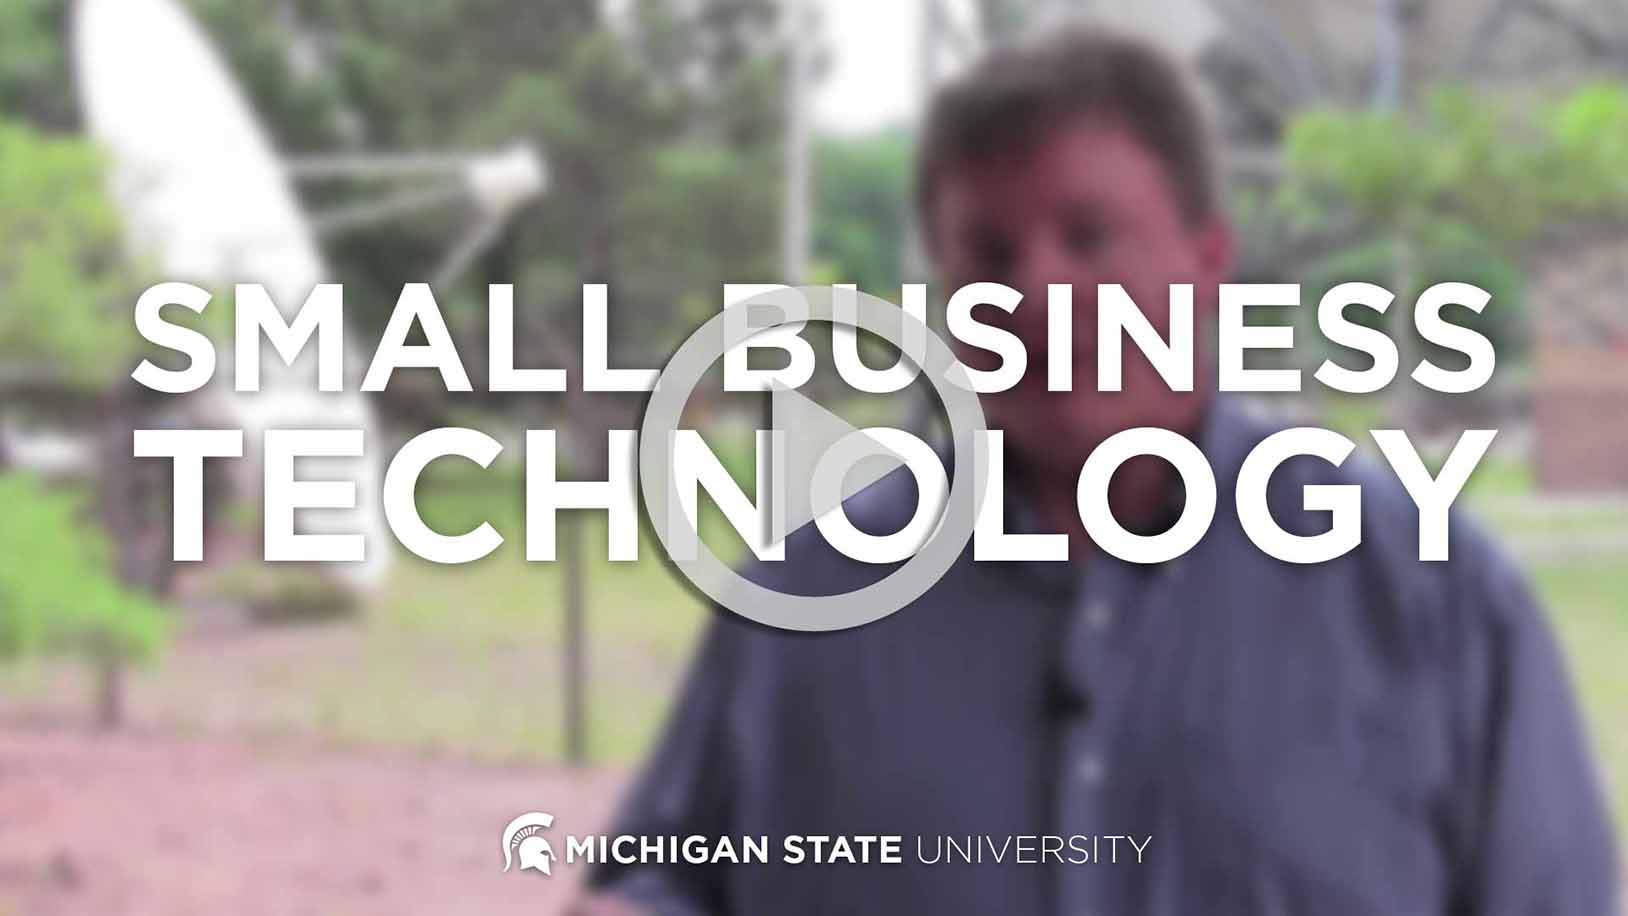 Small Business Technology Video Thumbnail